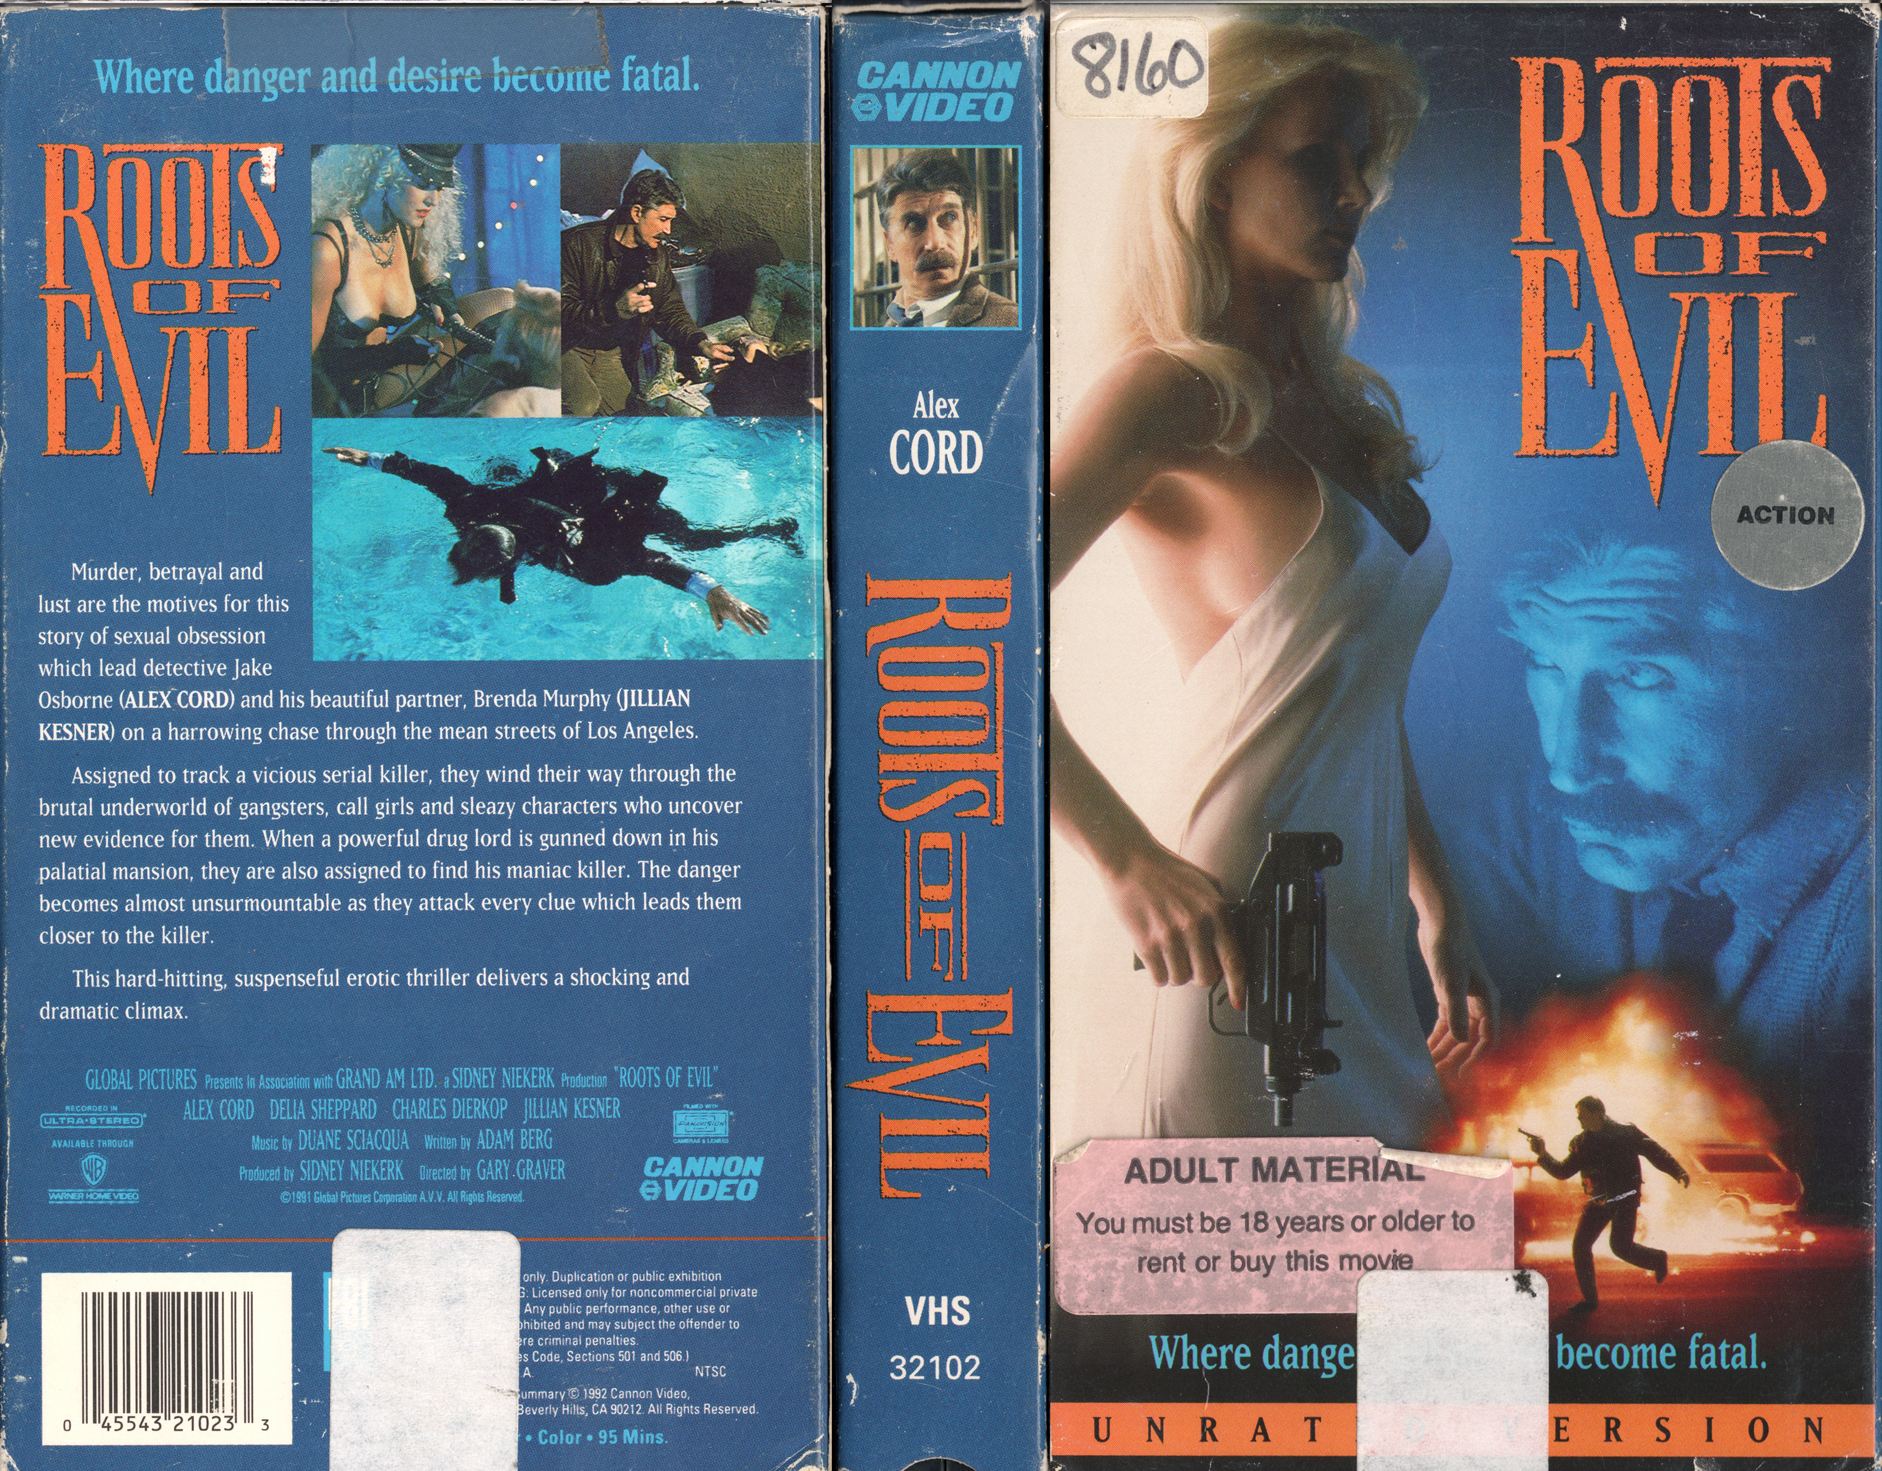 Roots of evil movie